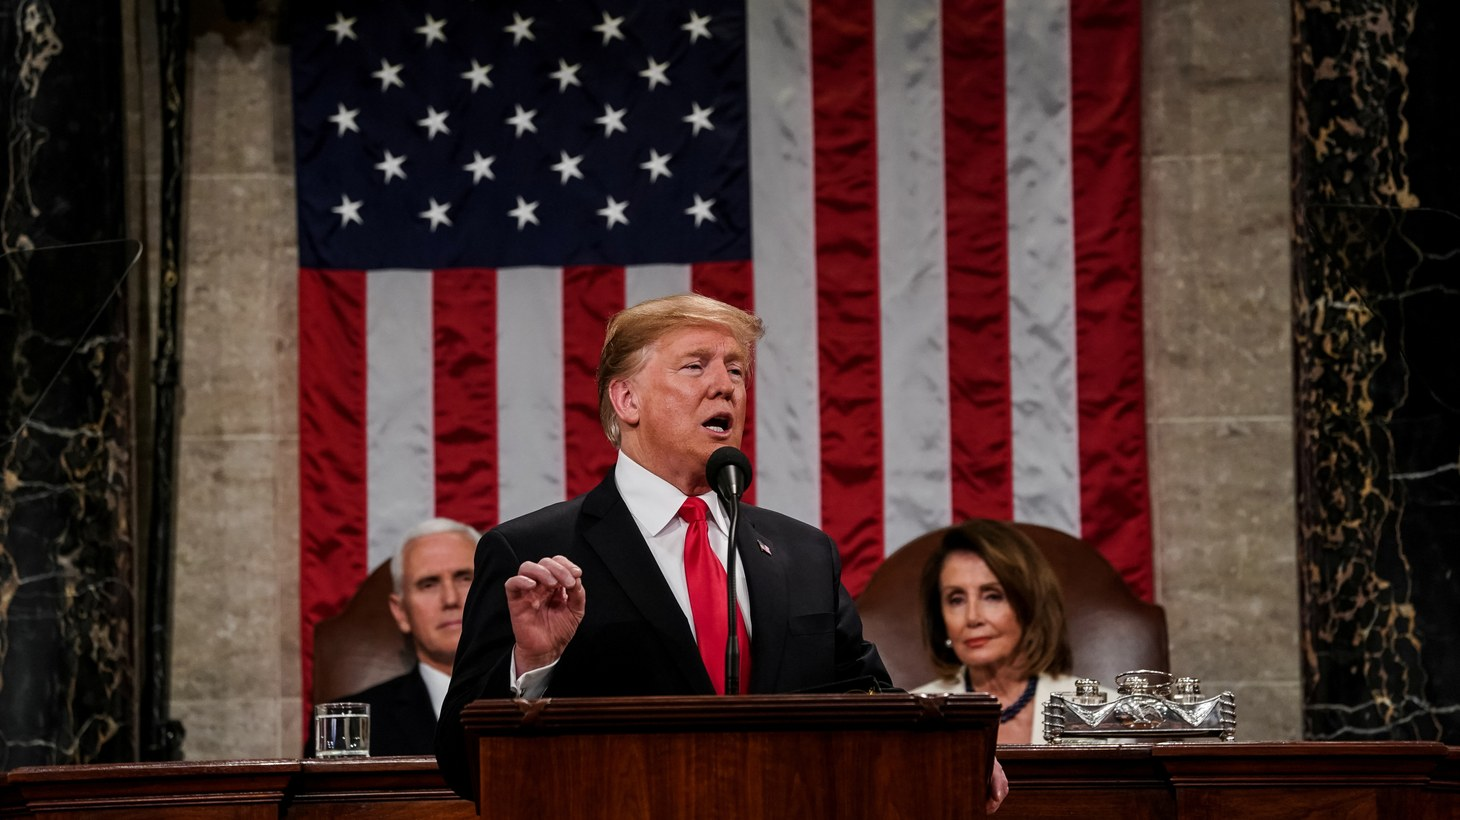 President Donald Trump delivered the State of the Union address, with Vice President Mike Pence and Speaker of the House Nancy Pelosi, at the Capitol in Washington, DC on February 5th, 2019.